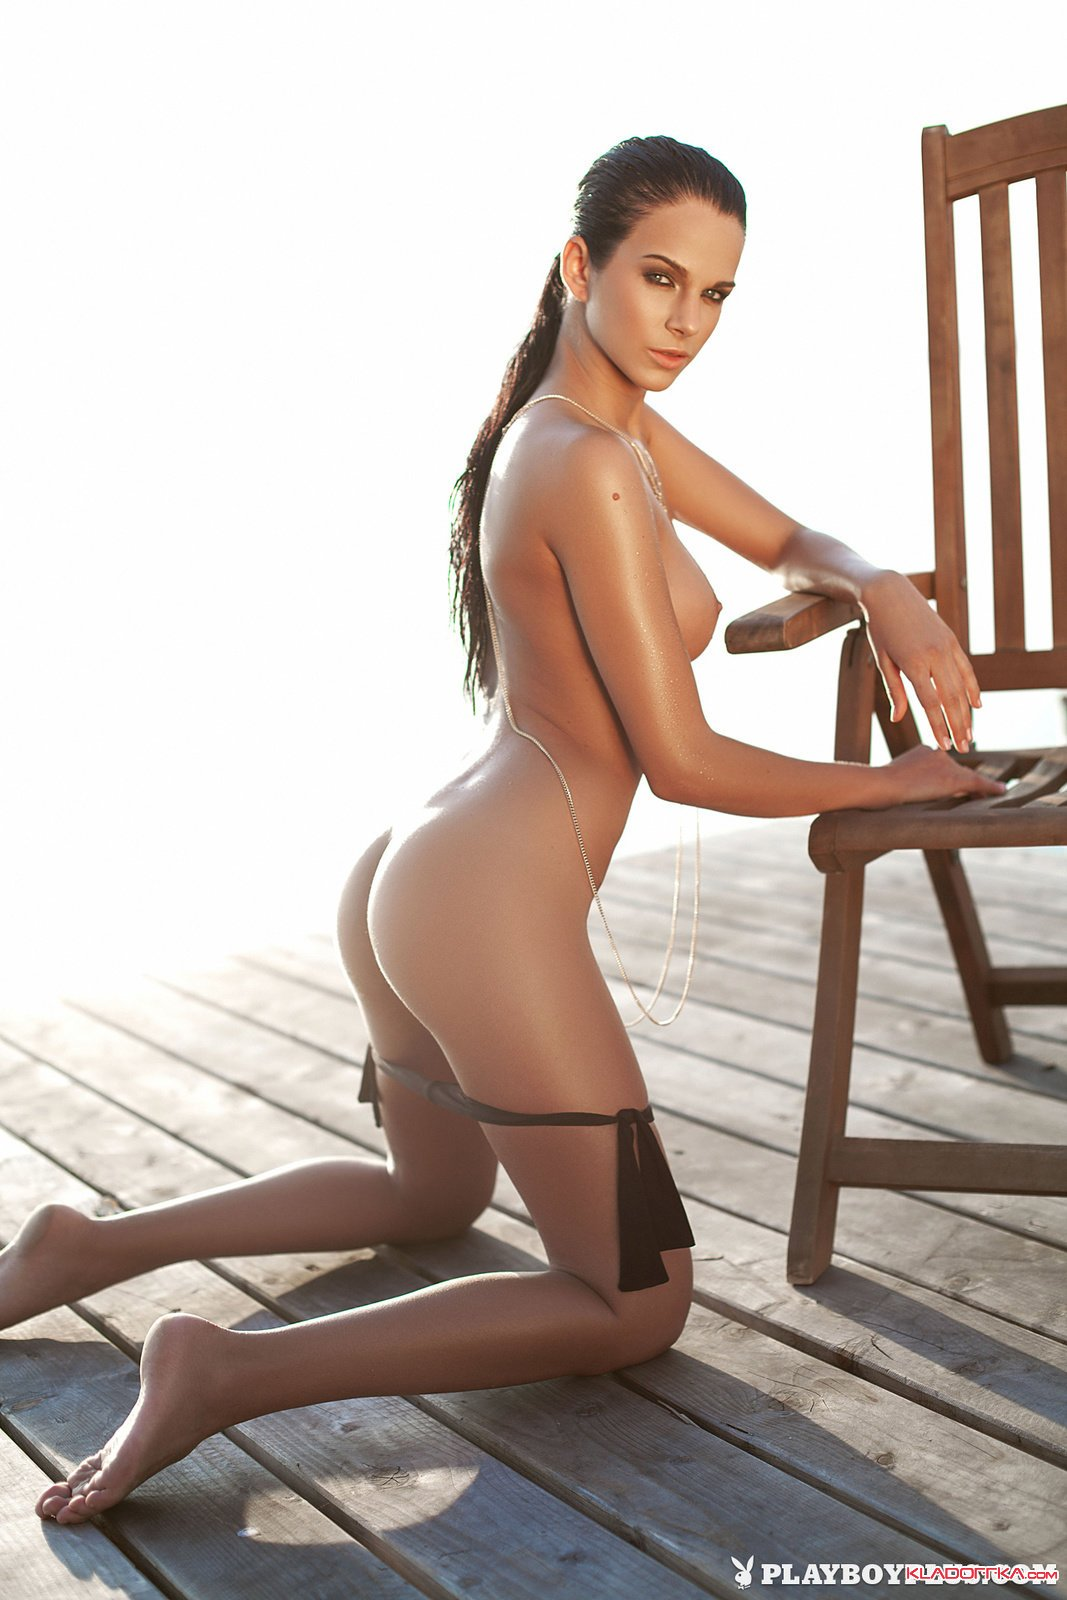 Sophie choudary naked #7